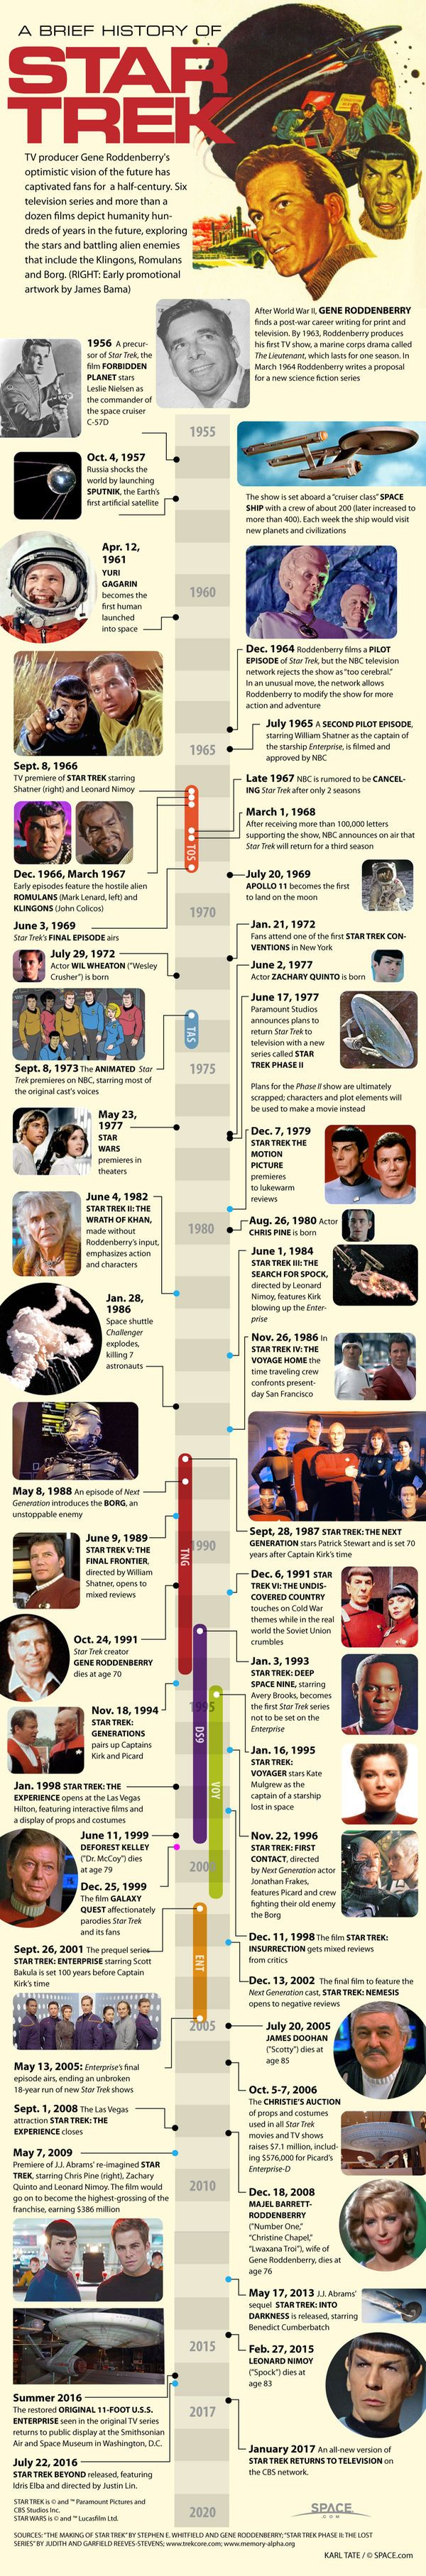 The Evolution of 'Star Trek' Credit: Karl Tate, SPACE.com contributor (Star Trek is © and ™Paramount Pictures and CBS Studios Inc. Star Wars is © and ™Lucasfilm Ltd.)